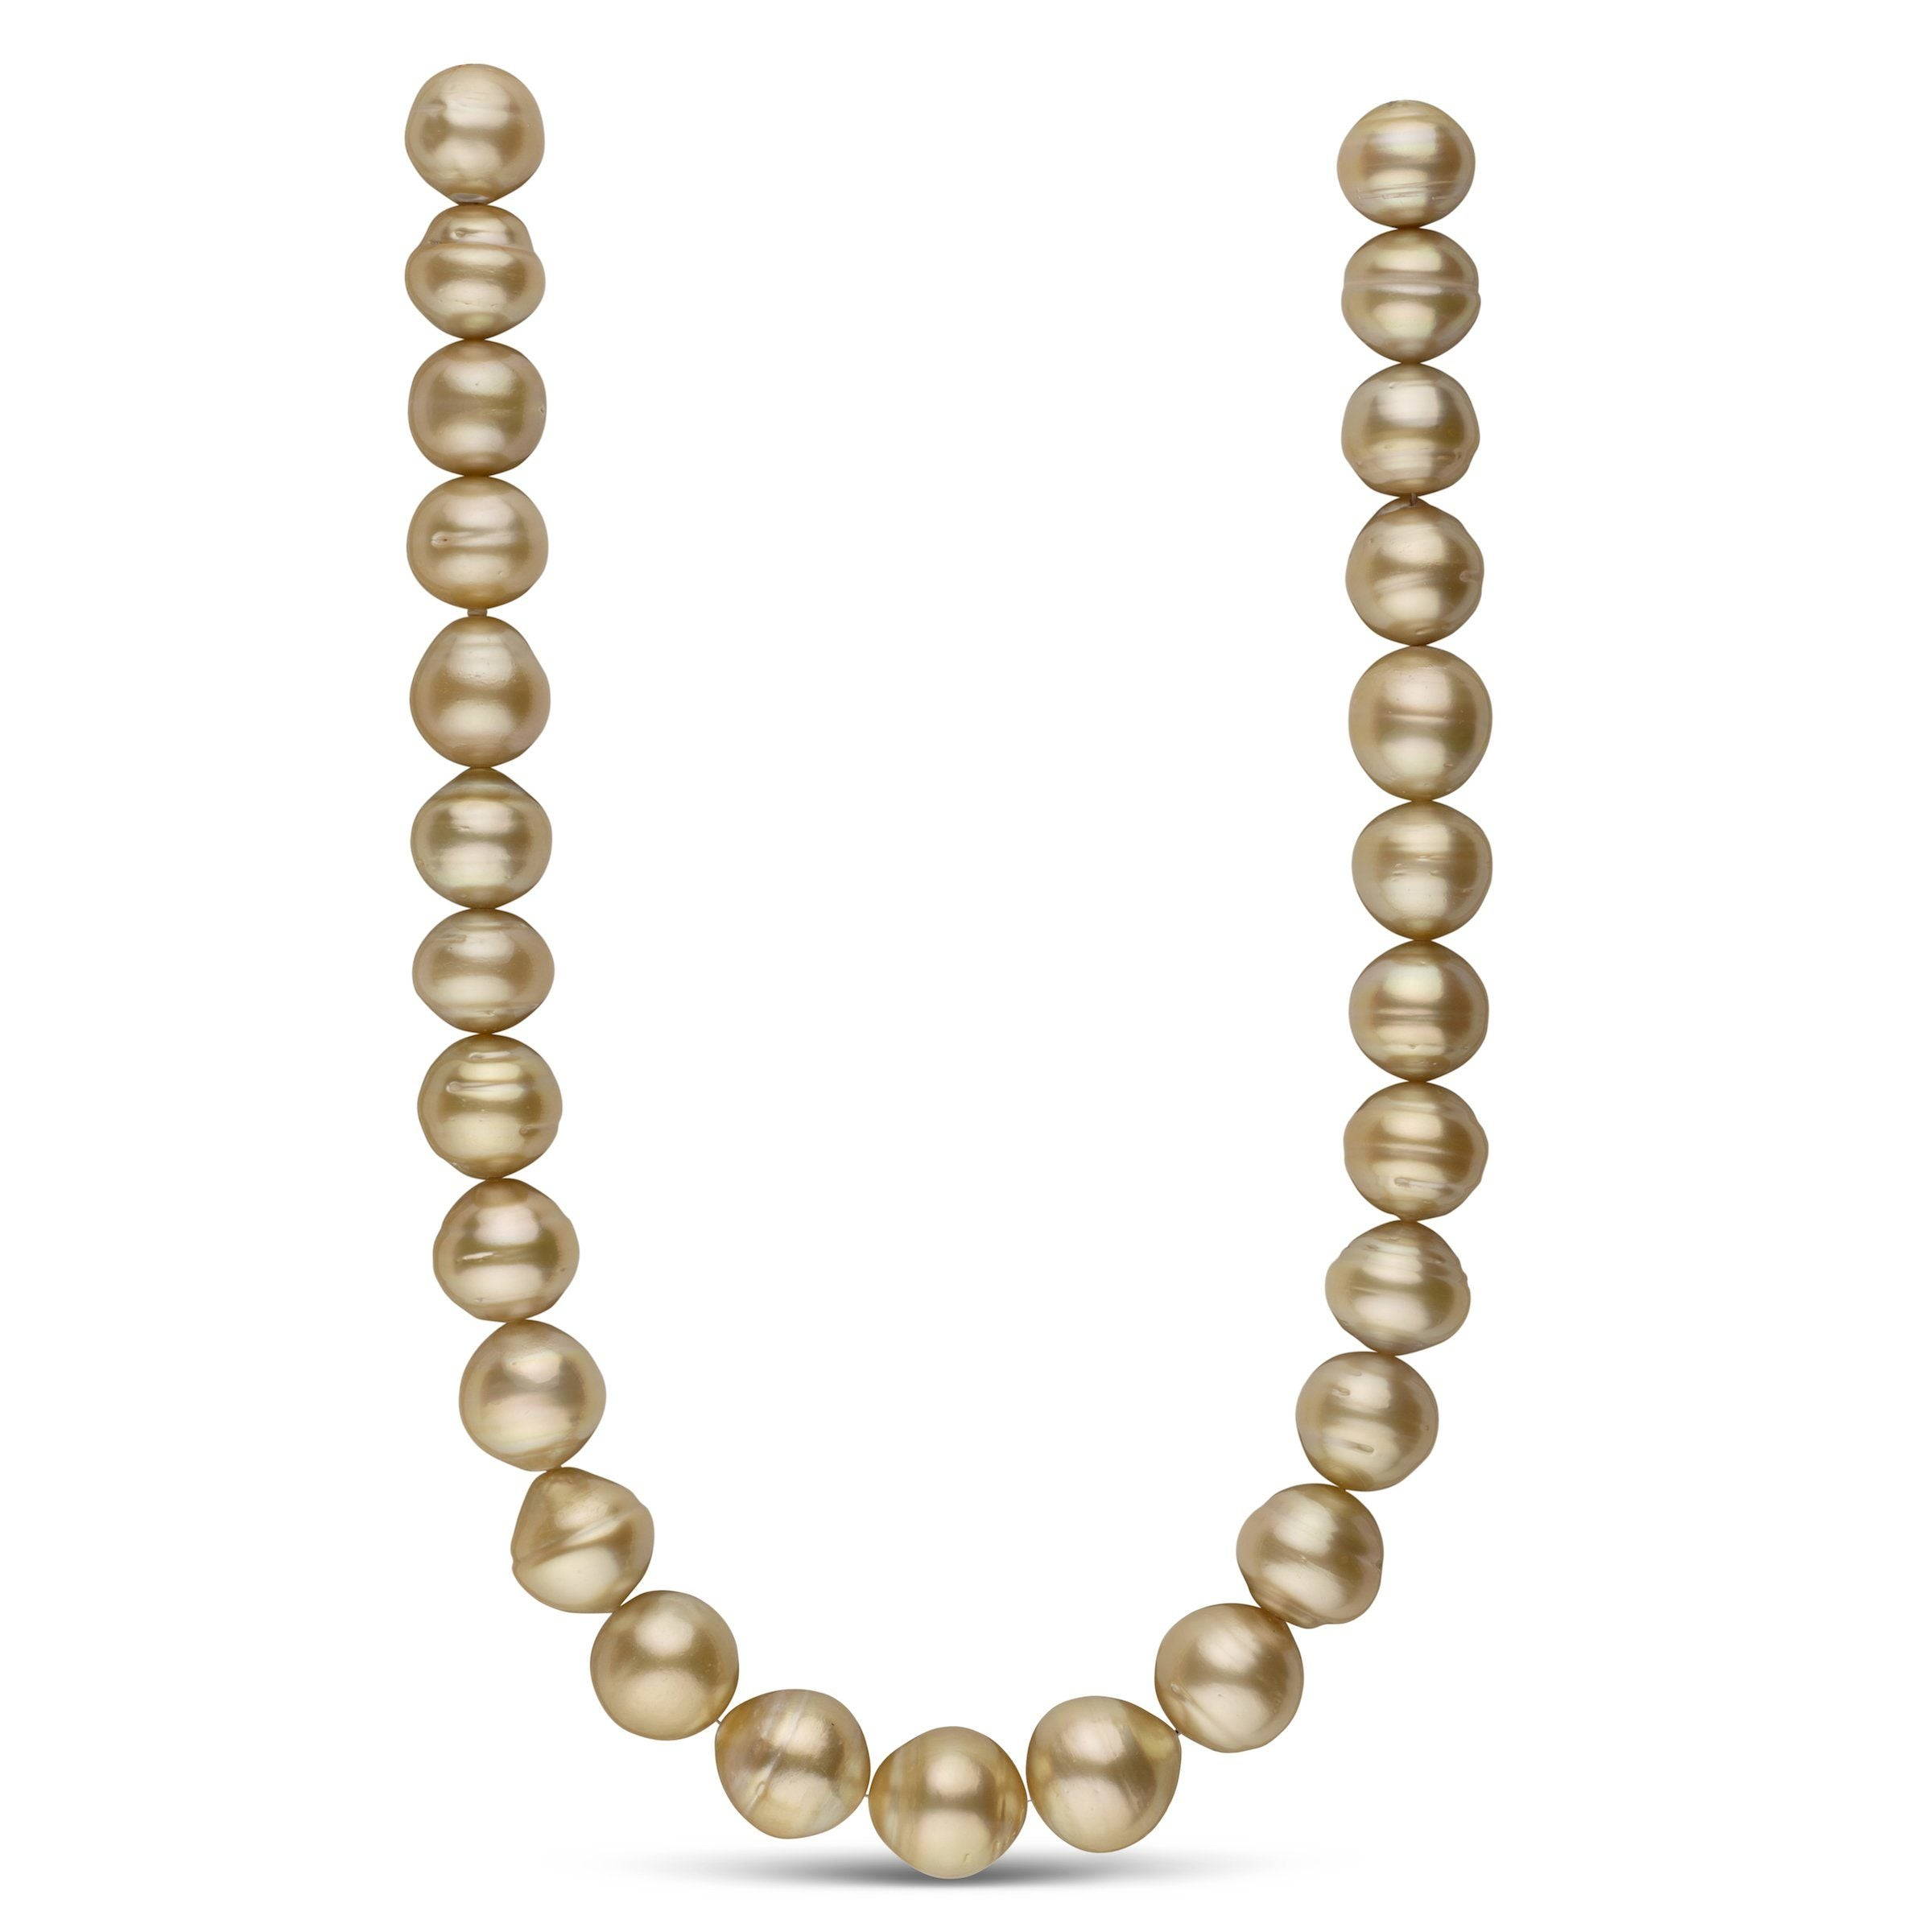 15.0-16.4 mm AA+ Golden South Sea Baroque Necklace